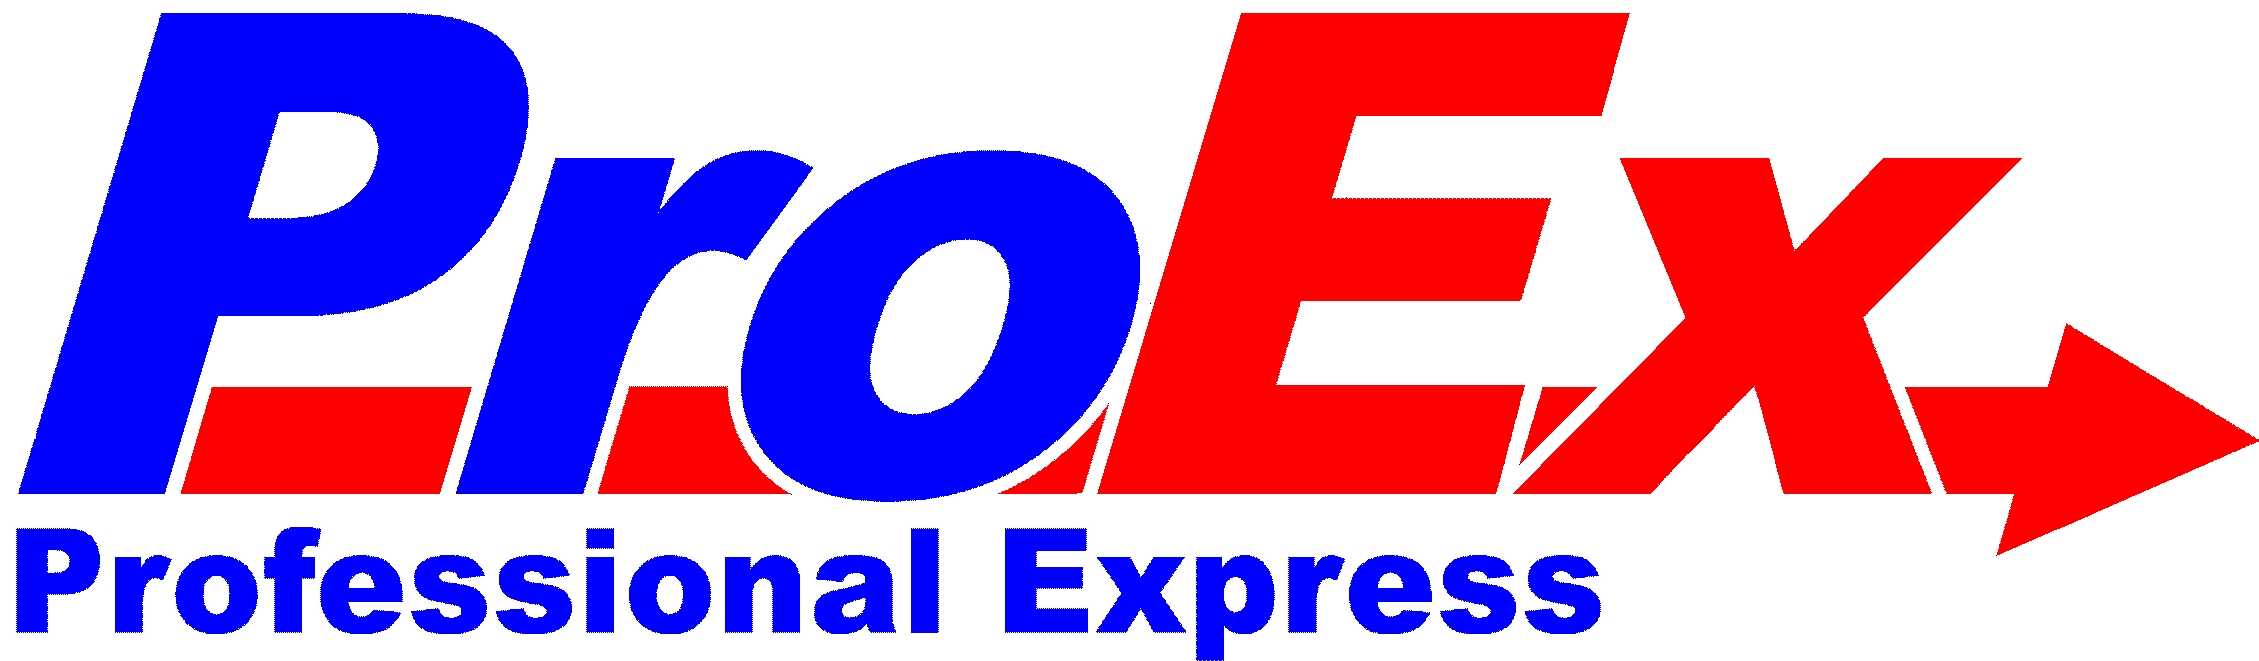 Professional Express